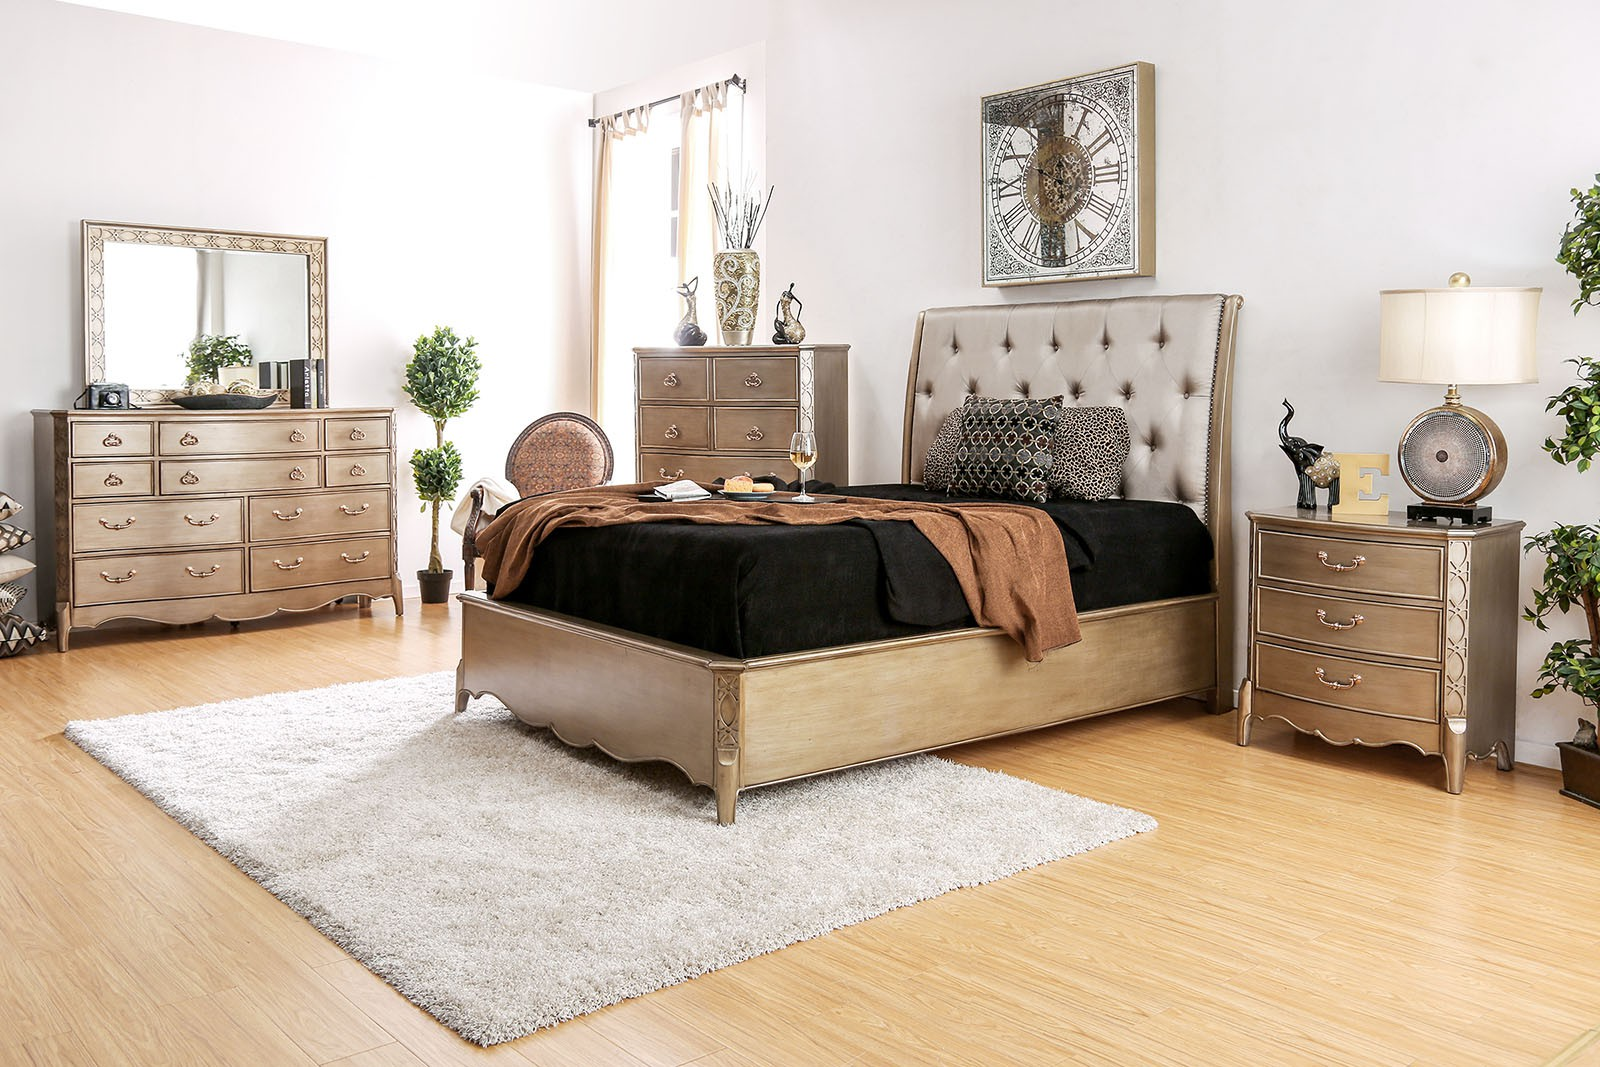 Luxurious Look Gold Finish Contemporary Style Queen Bed 4pc Set Dresser Mirror Nightstand Bedroom